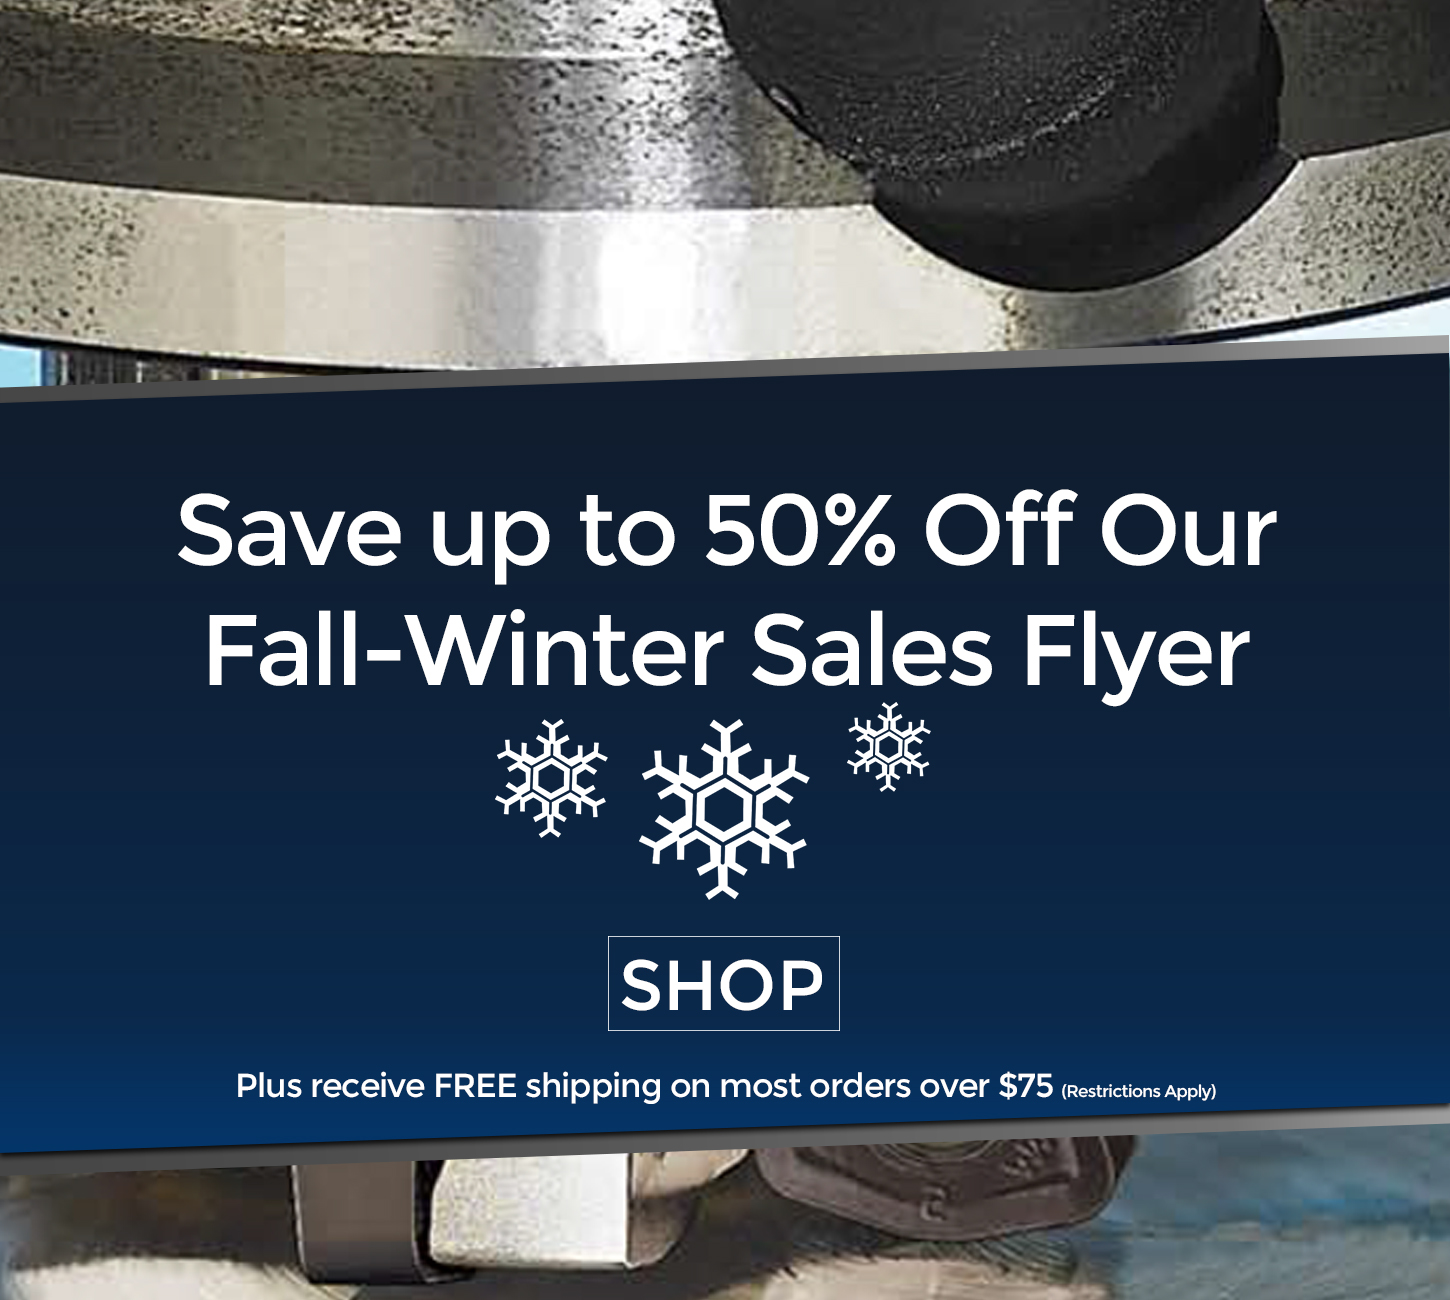 Save up to 50% Off Our Sale Flyer